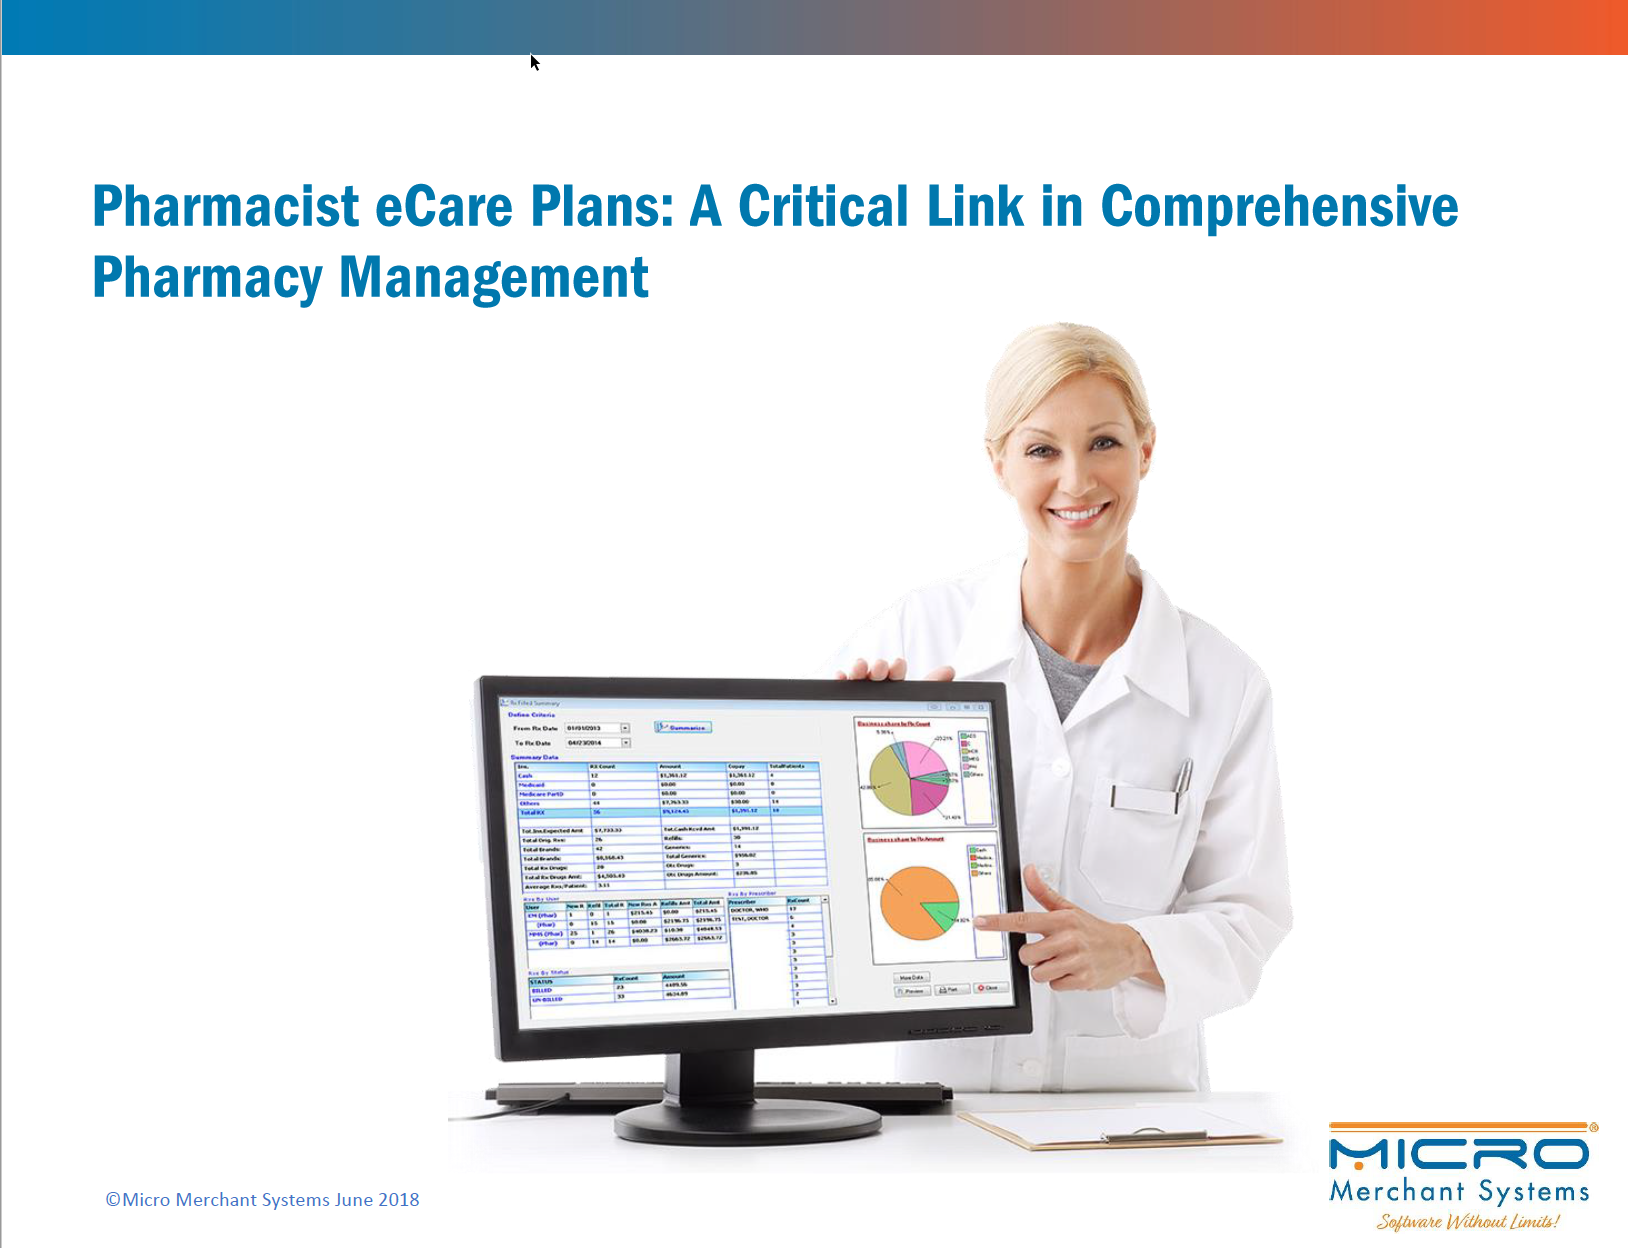 Pharmacist eCare Plans: A Critical Link in Comprehensive Pharmacy Management